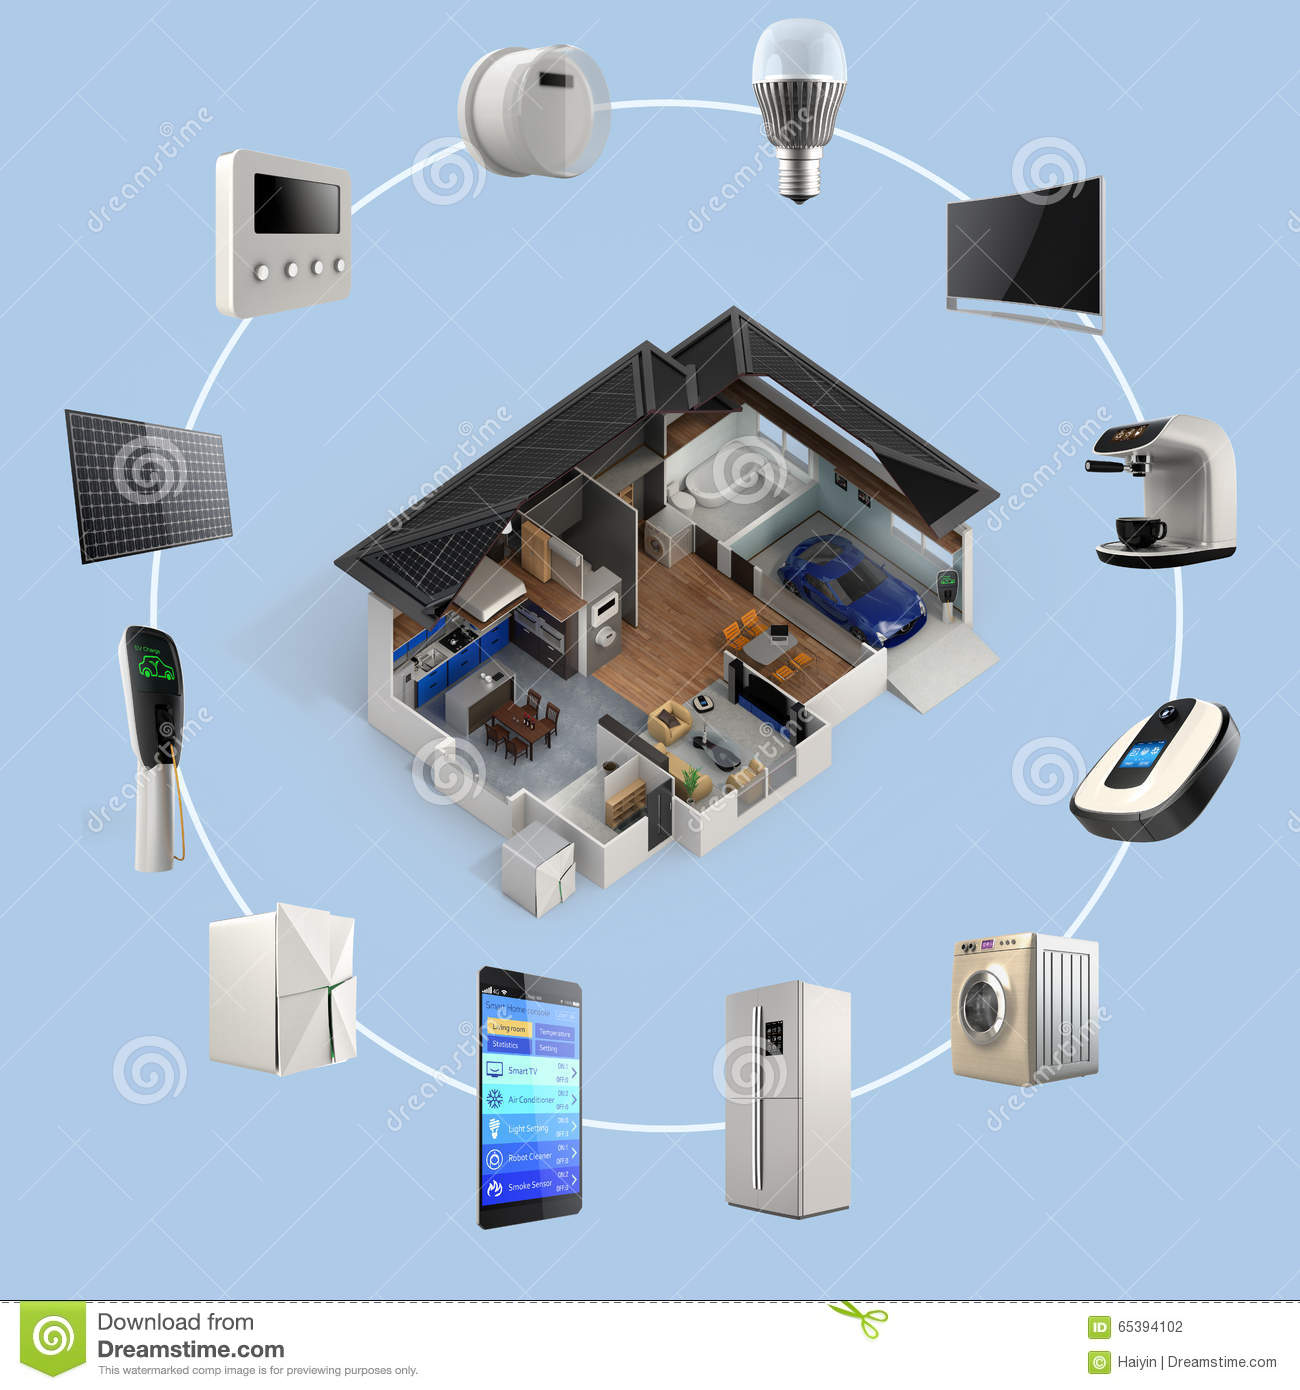 Automation Technology: 3D Infographics Of Smart Home Automation Technology Stock